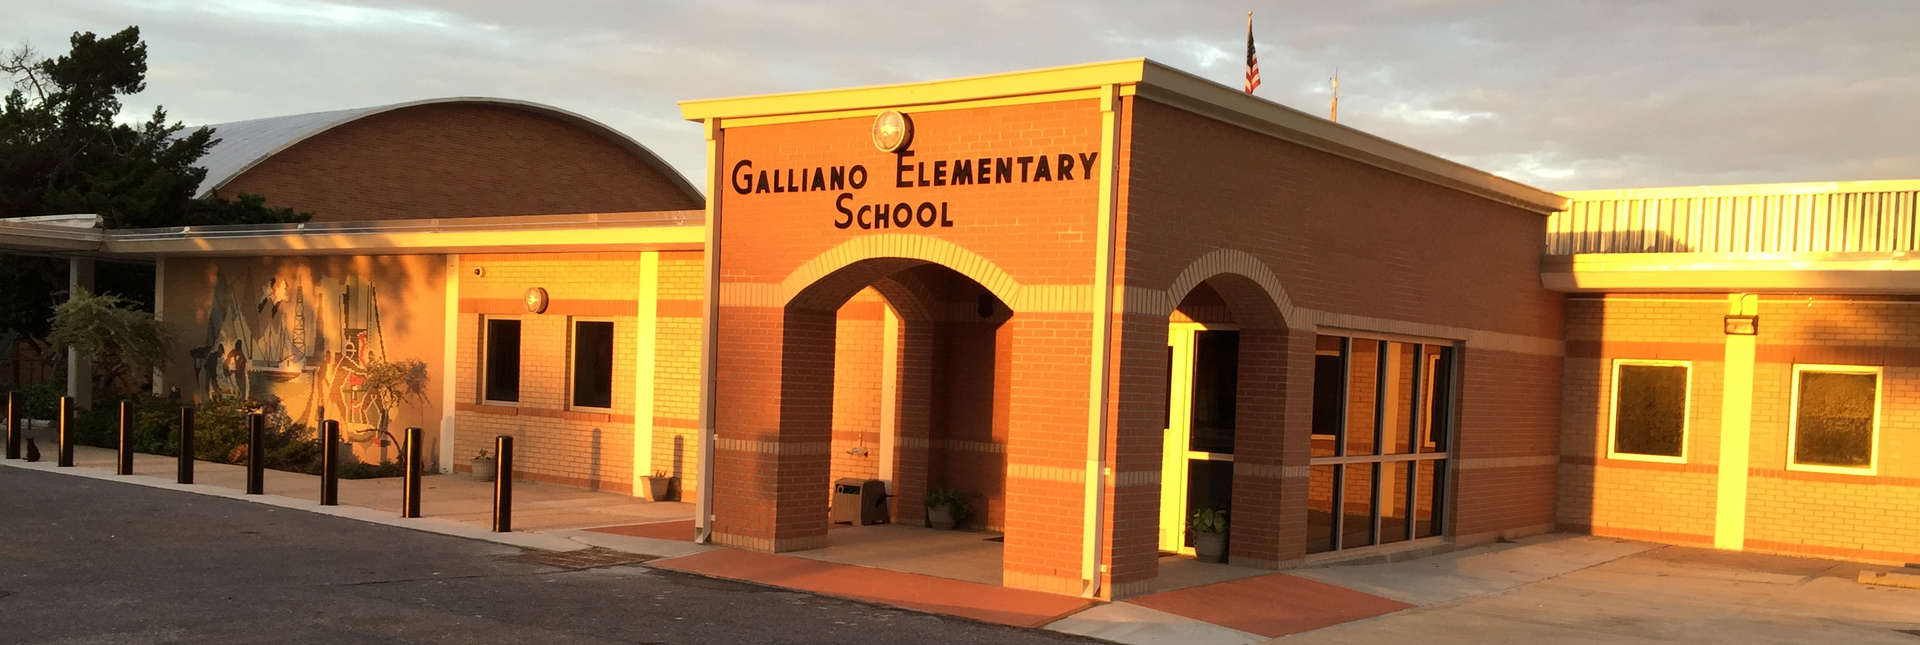 Galliano Elementary school entrance welcomes all visitors. Please sign in in the front office.